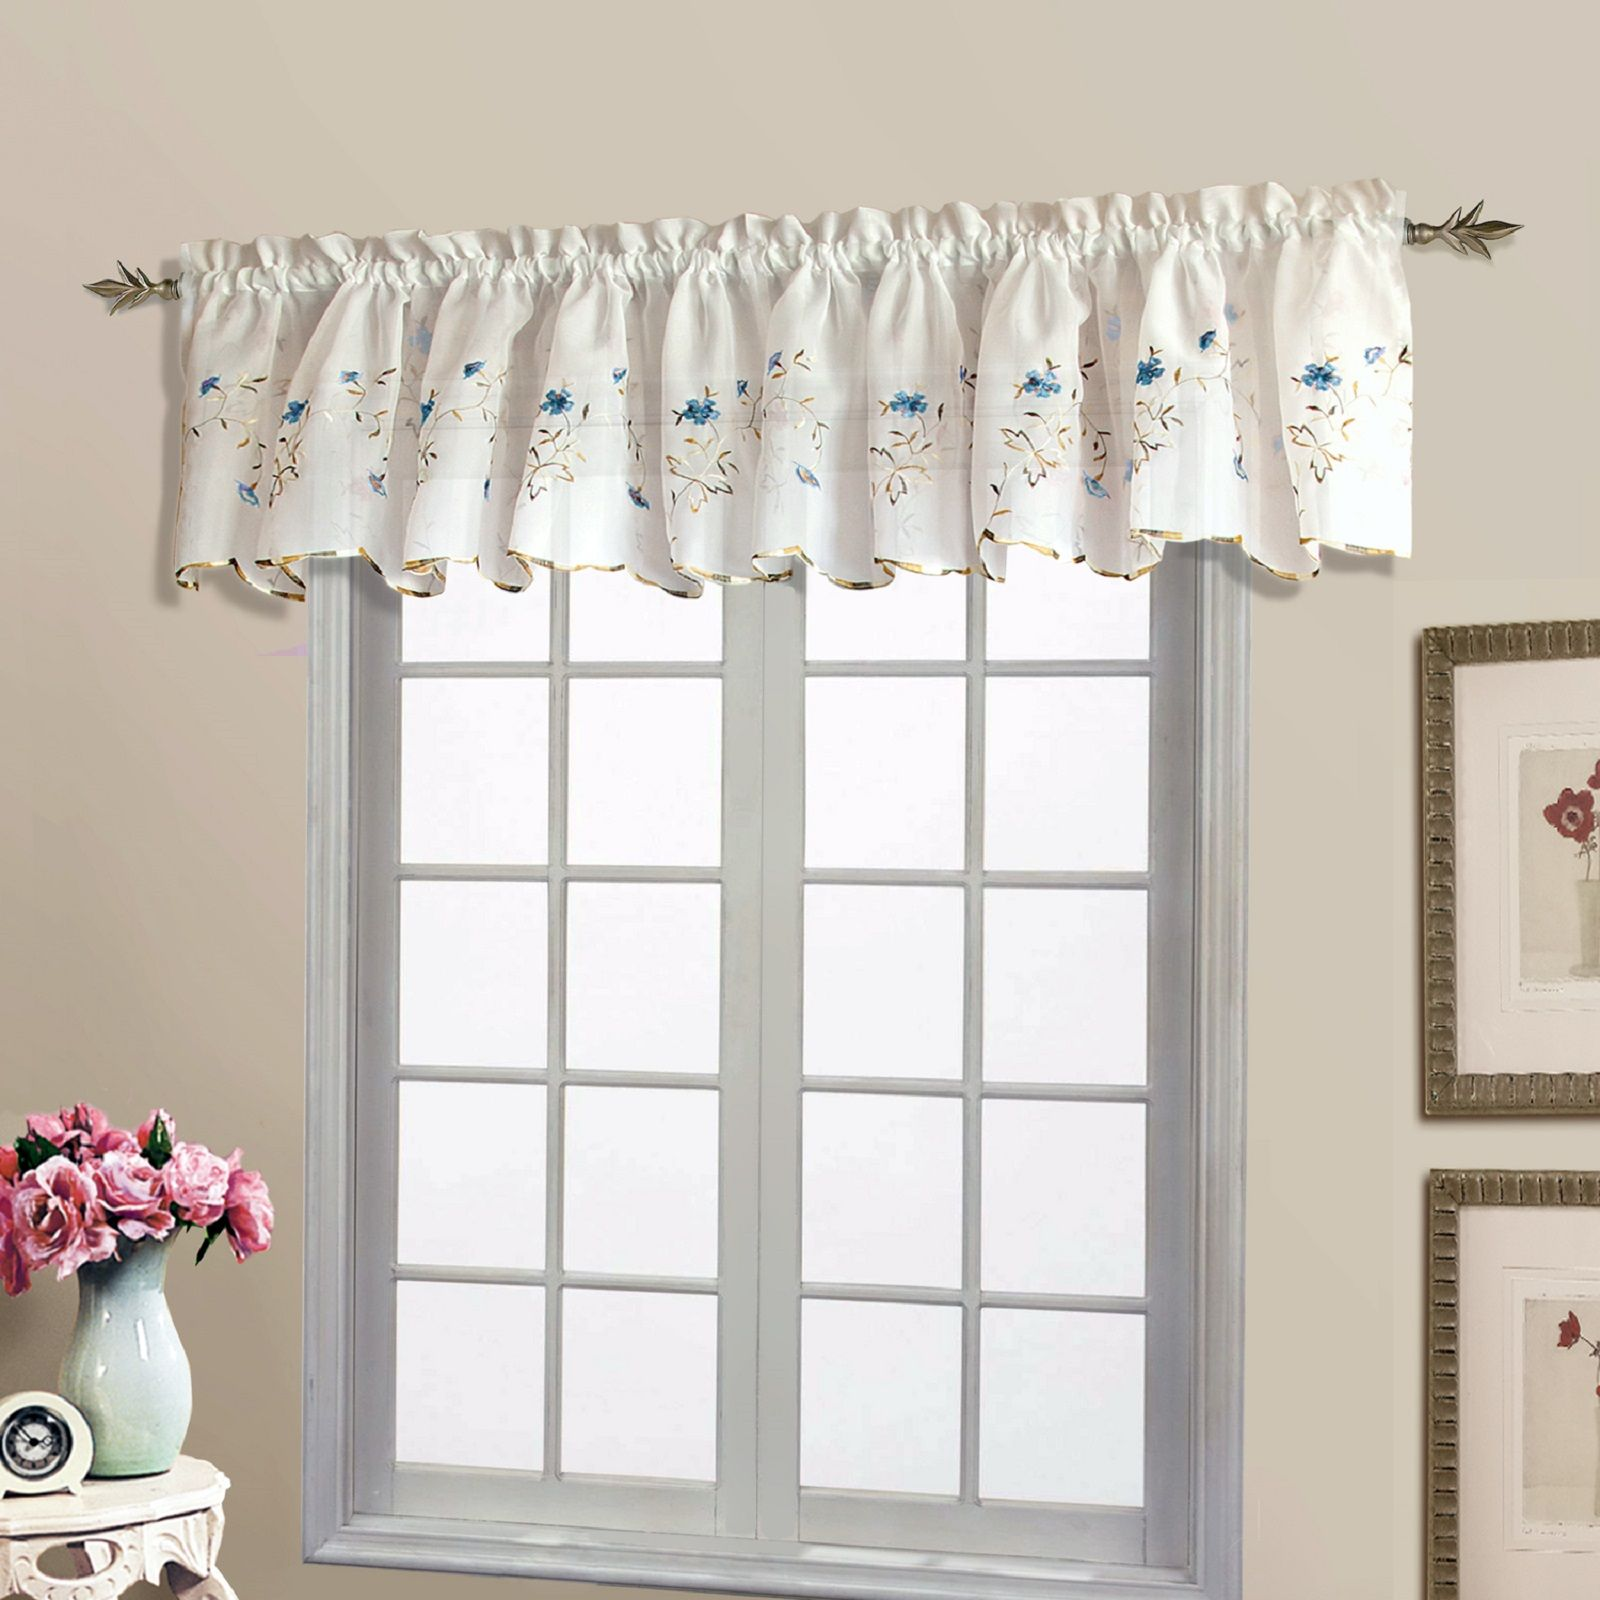 United Curtain Company Loretta 52 X18 Embroidered Scalloped Valance White White Violet White Blue Natural Chocolate Valance Curtains Valance Home Decor